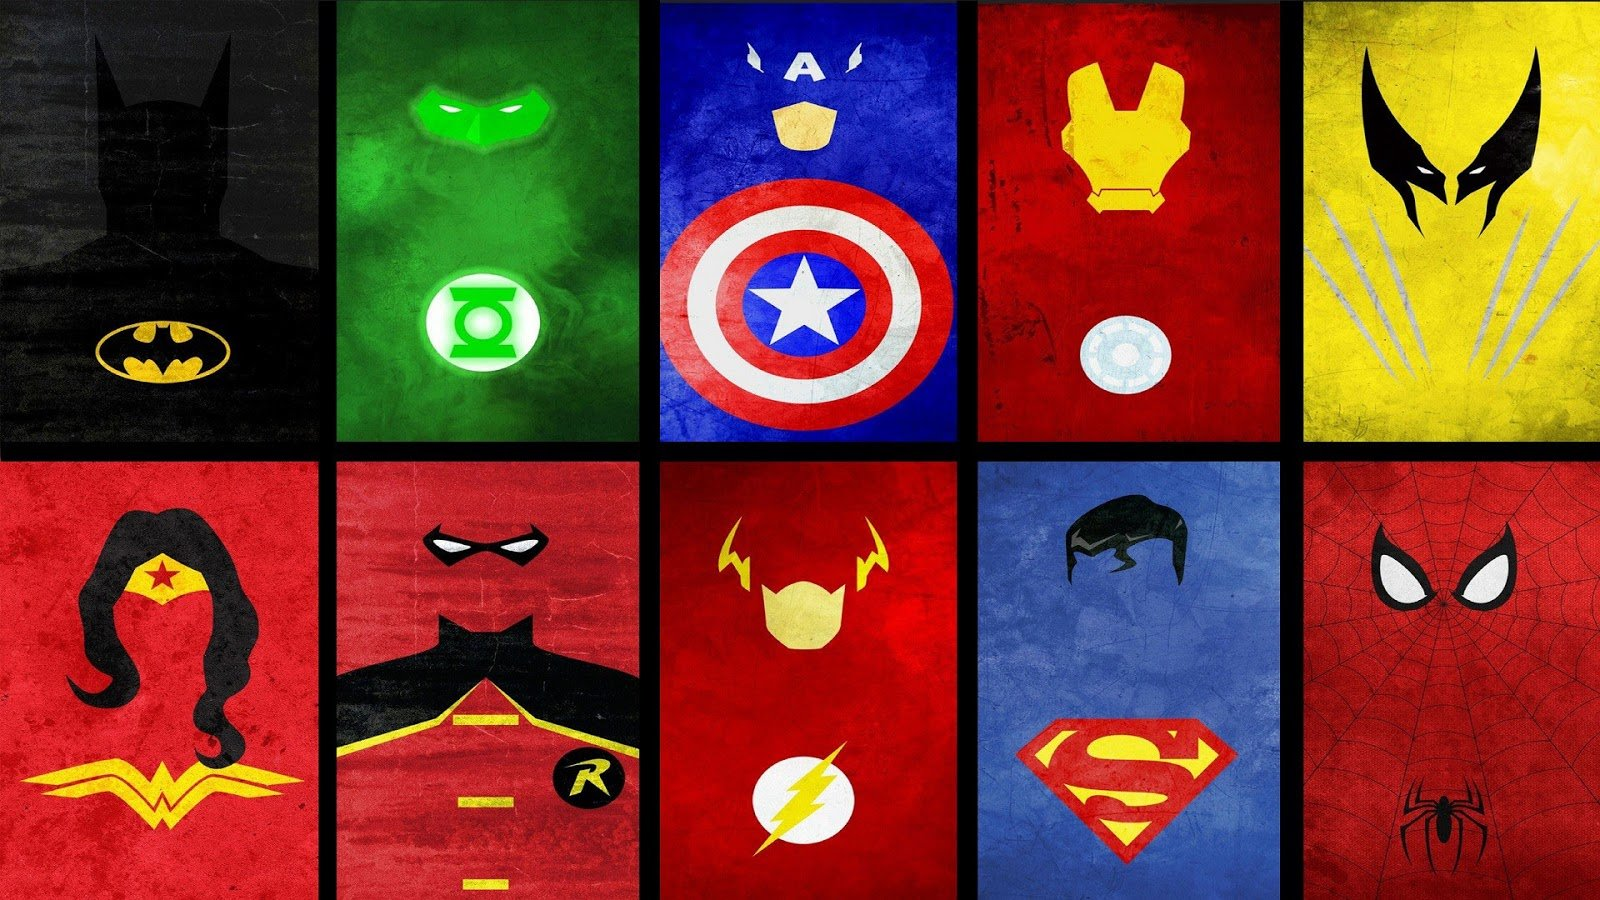 Superheroes Logos Wallpaper - WallpaperSafari